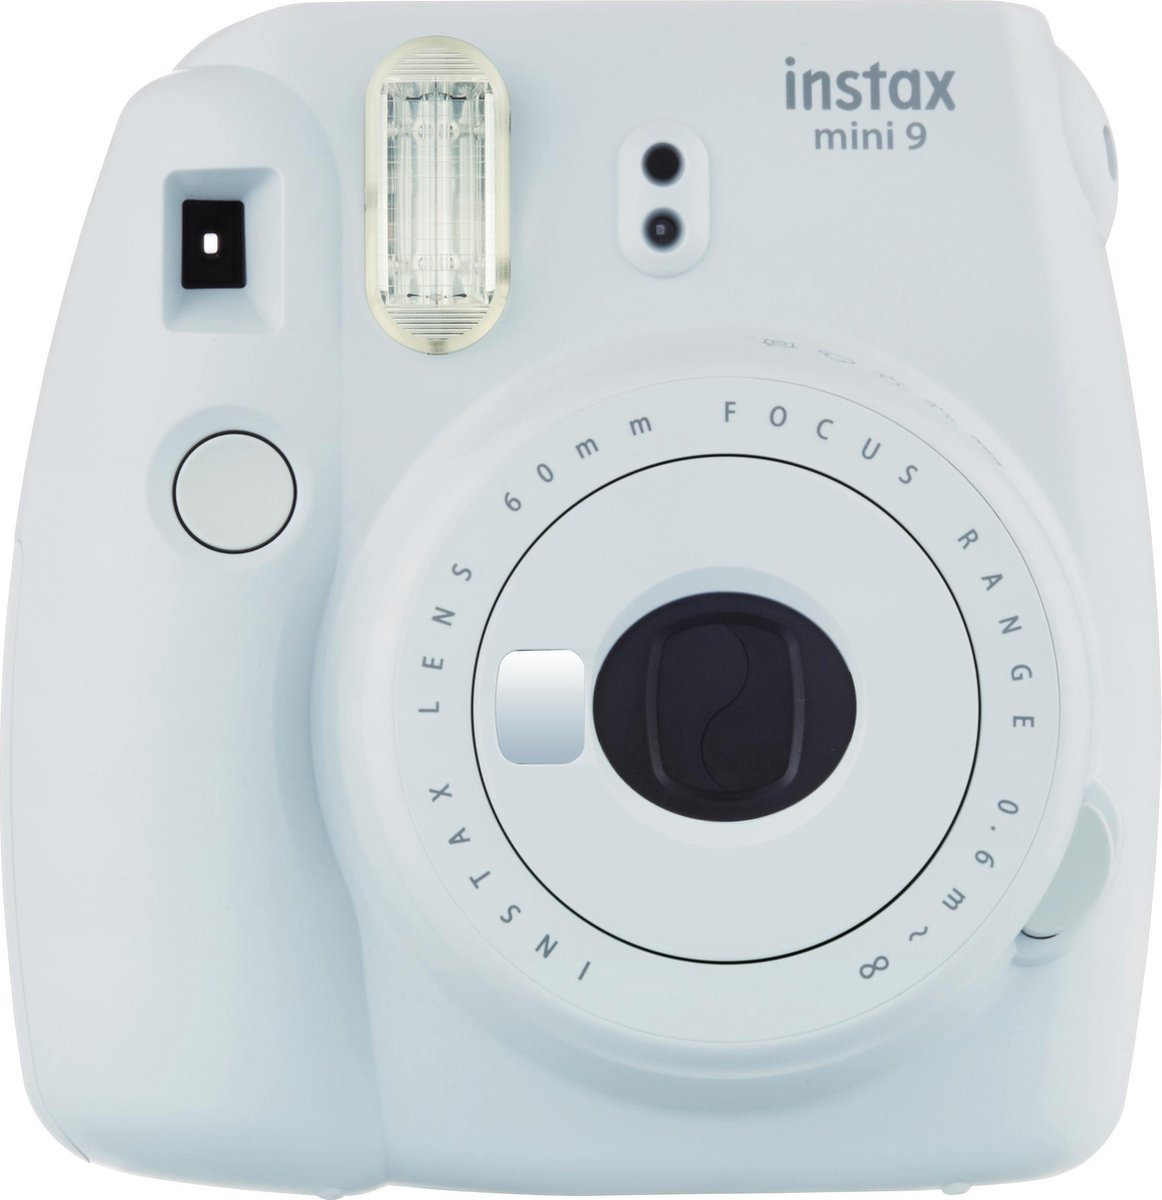 Fujifilm Instax Mini 9 – Smokey White